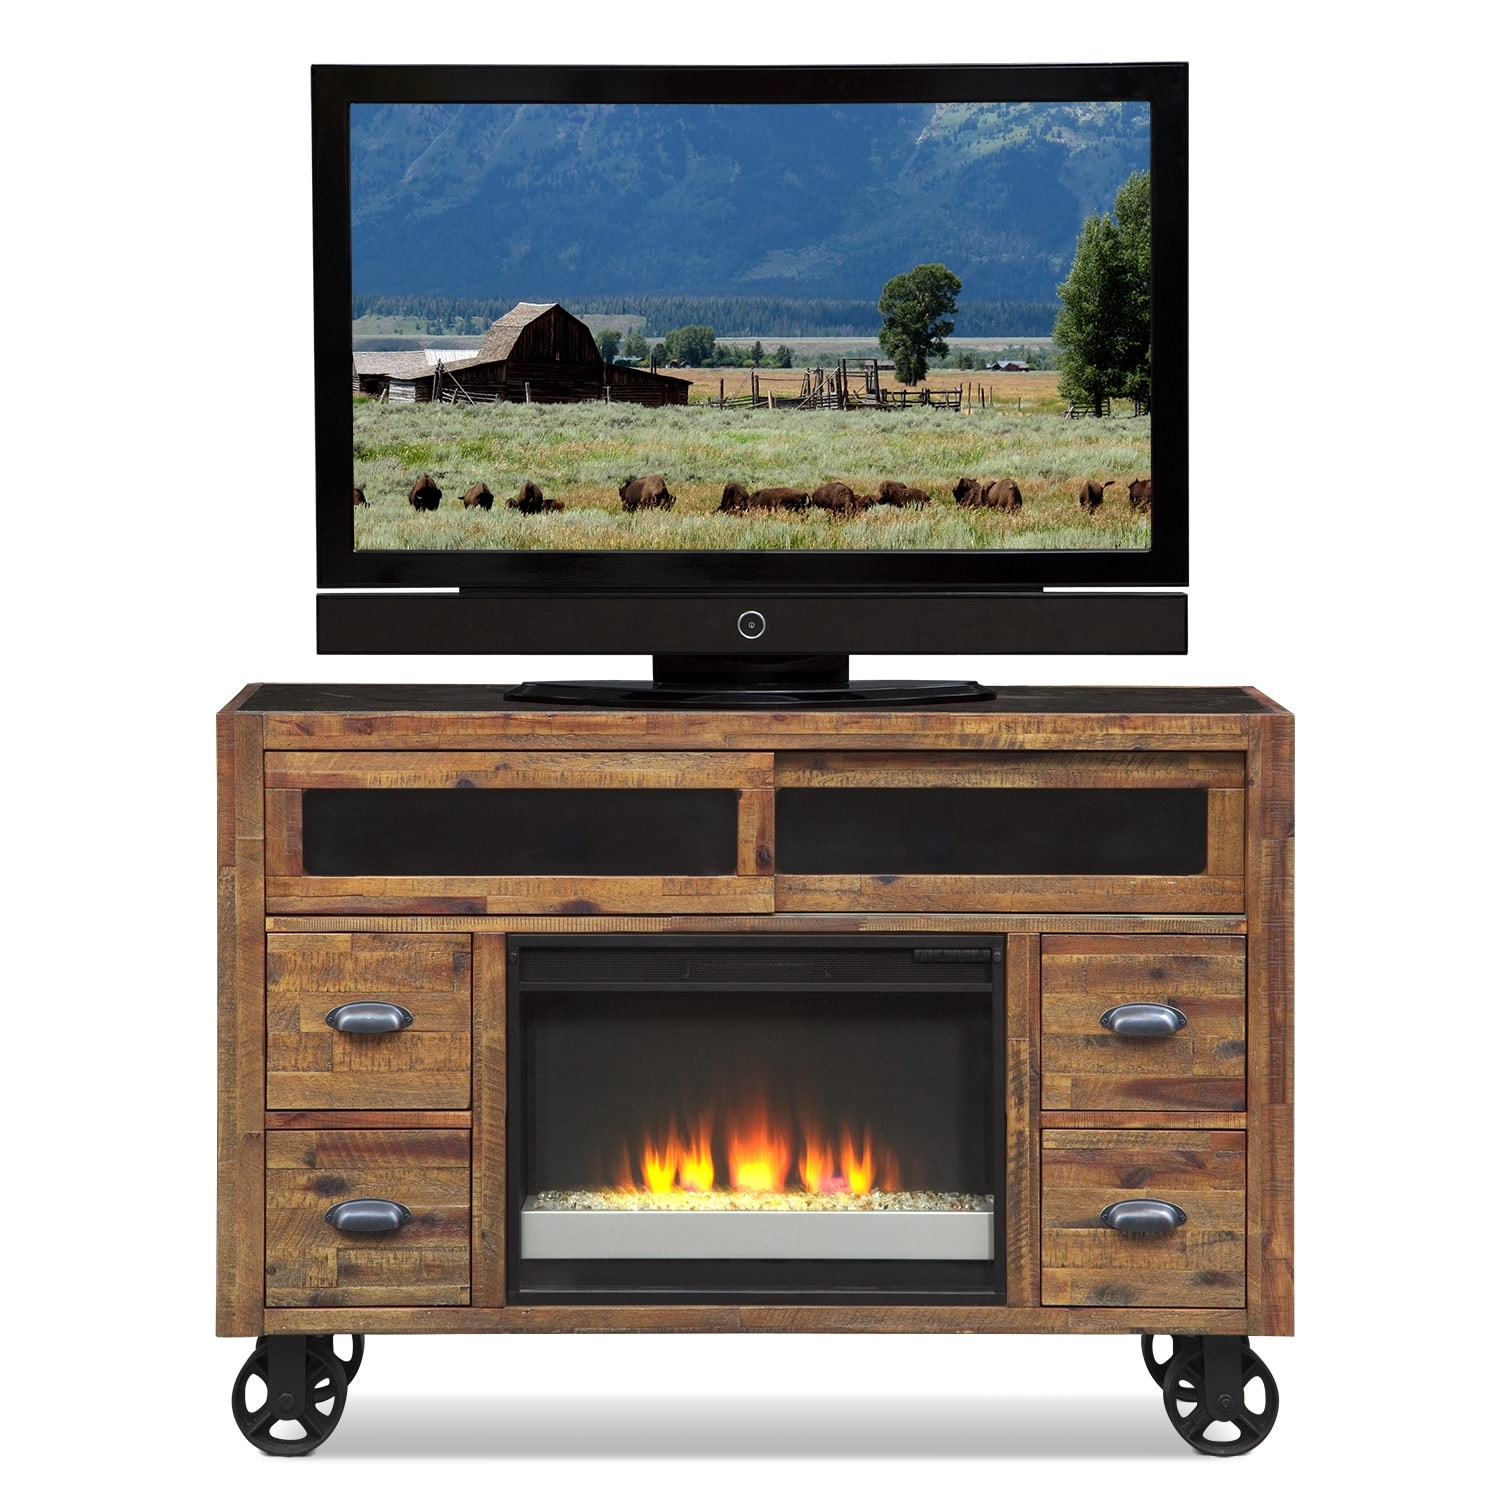 Andover Entertainment Wall Units Fireplace Tv Stand